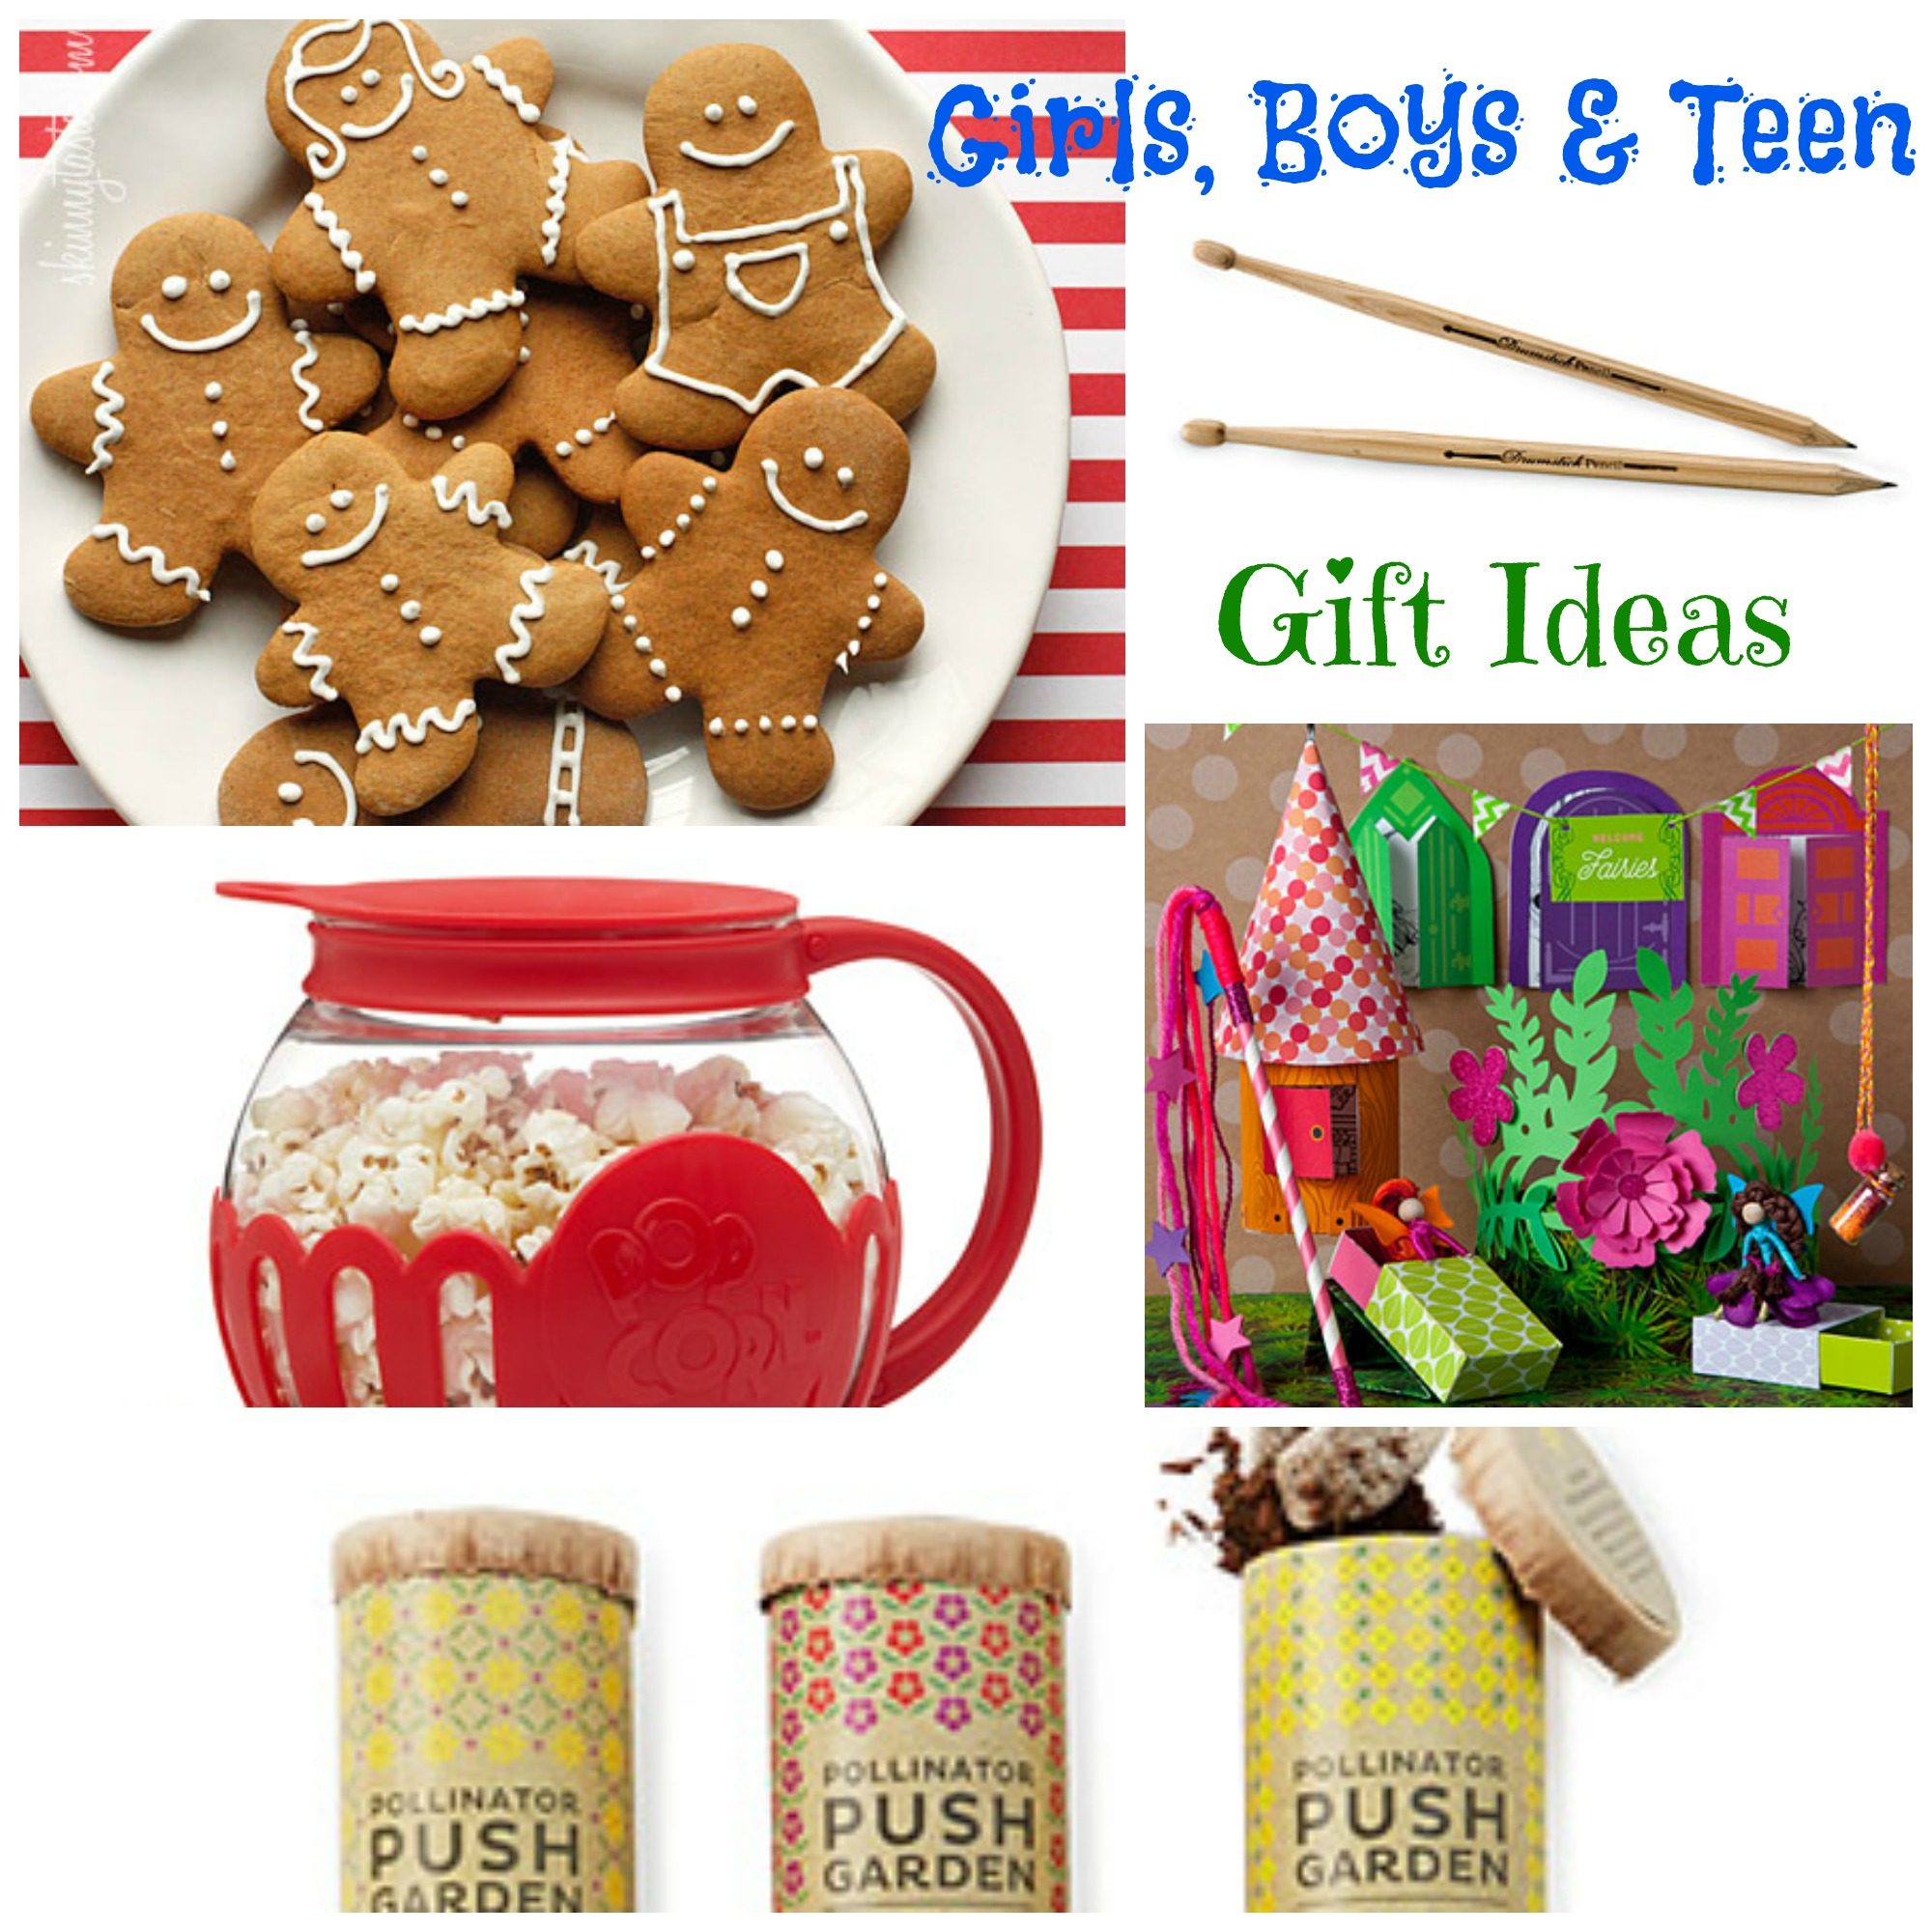 Girls, Boys and Teens Christmas Gift Ideas +$50 Gift Card Giveaway ...